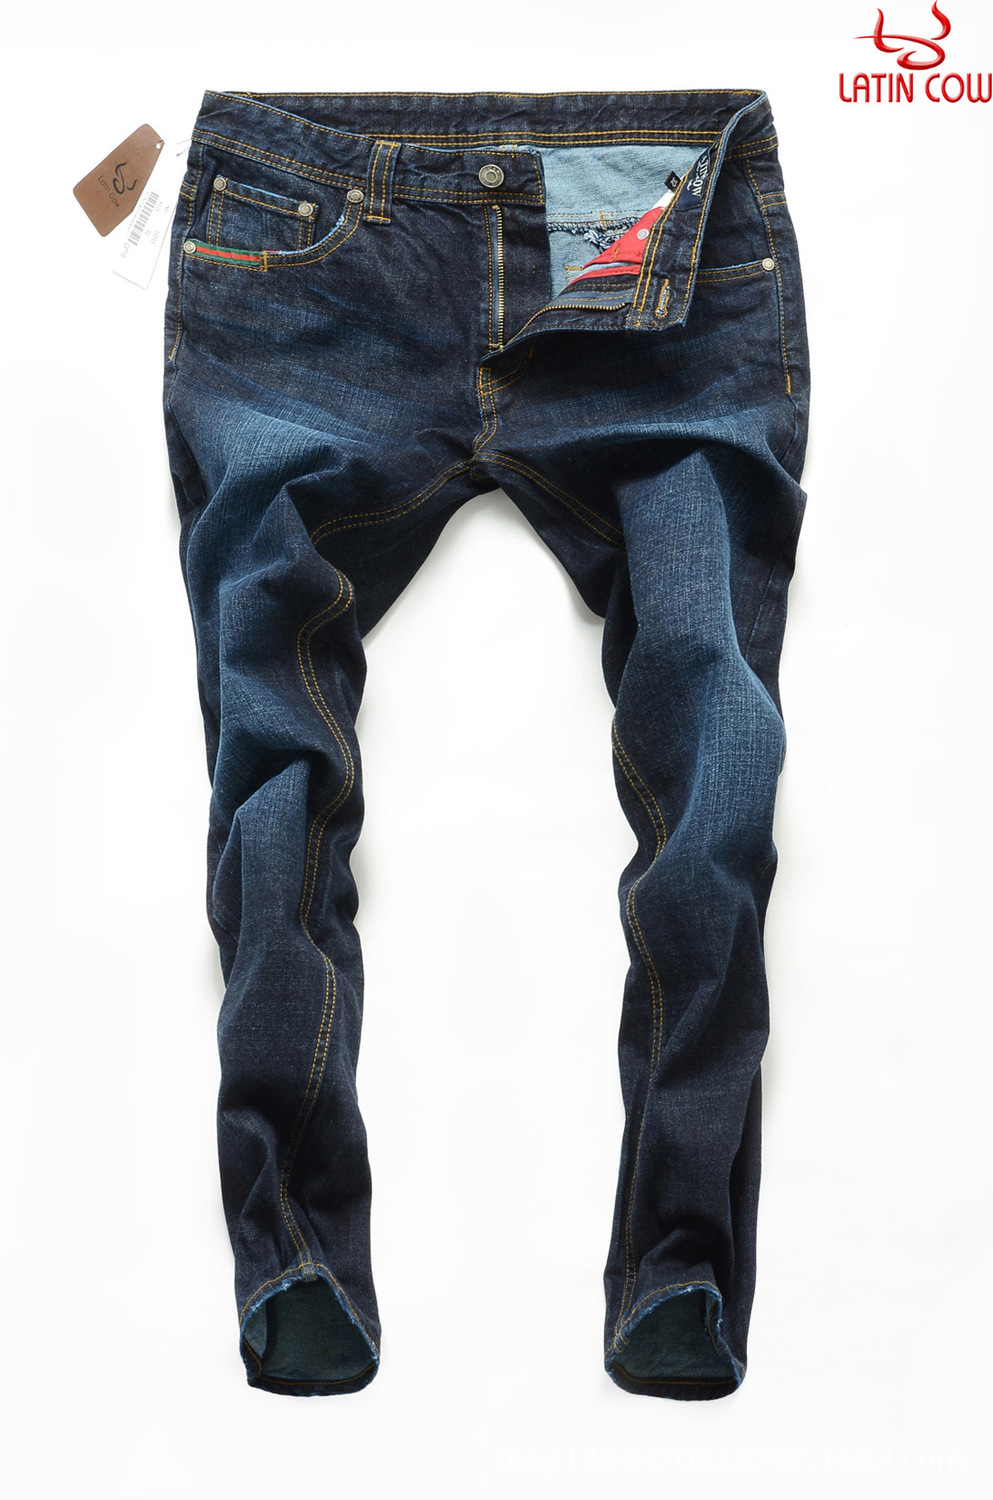 Exclusive Denim Adidas Top Ten 2000 Swaggy P Pes For: Exclusive Jeans For Men